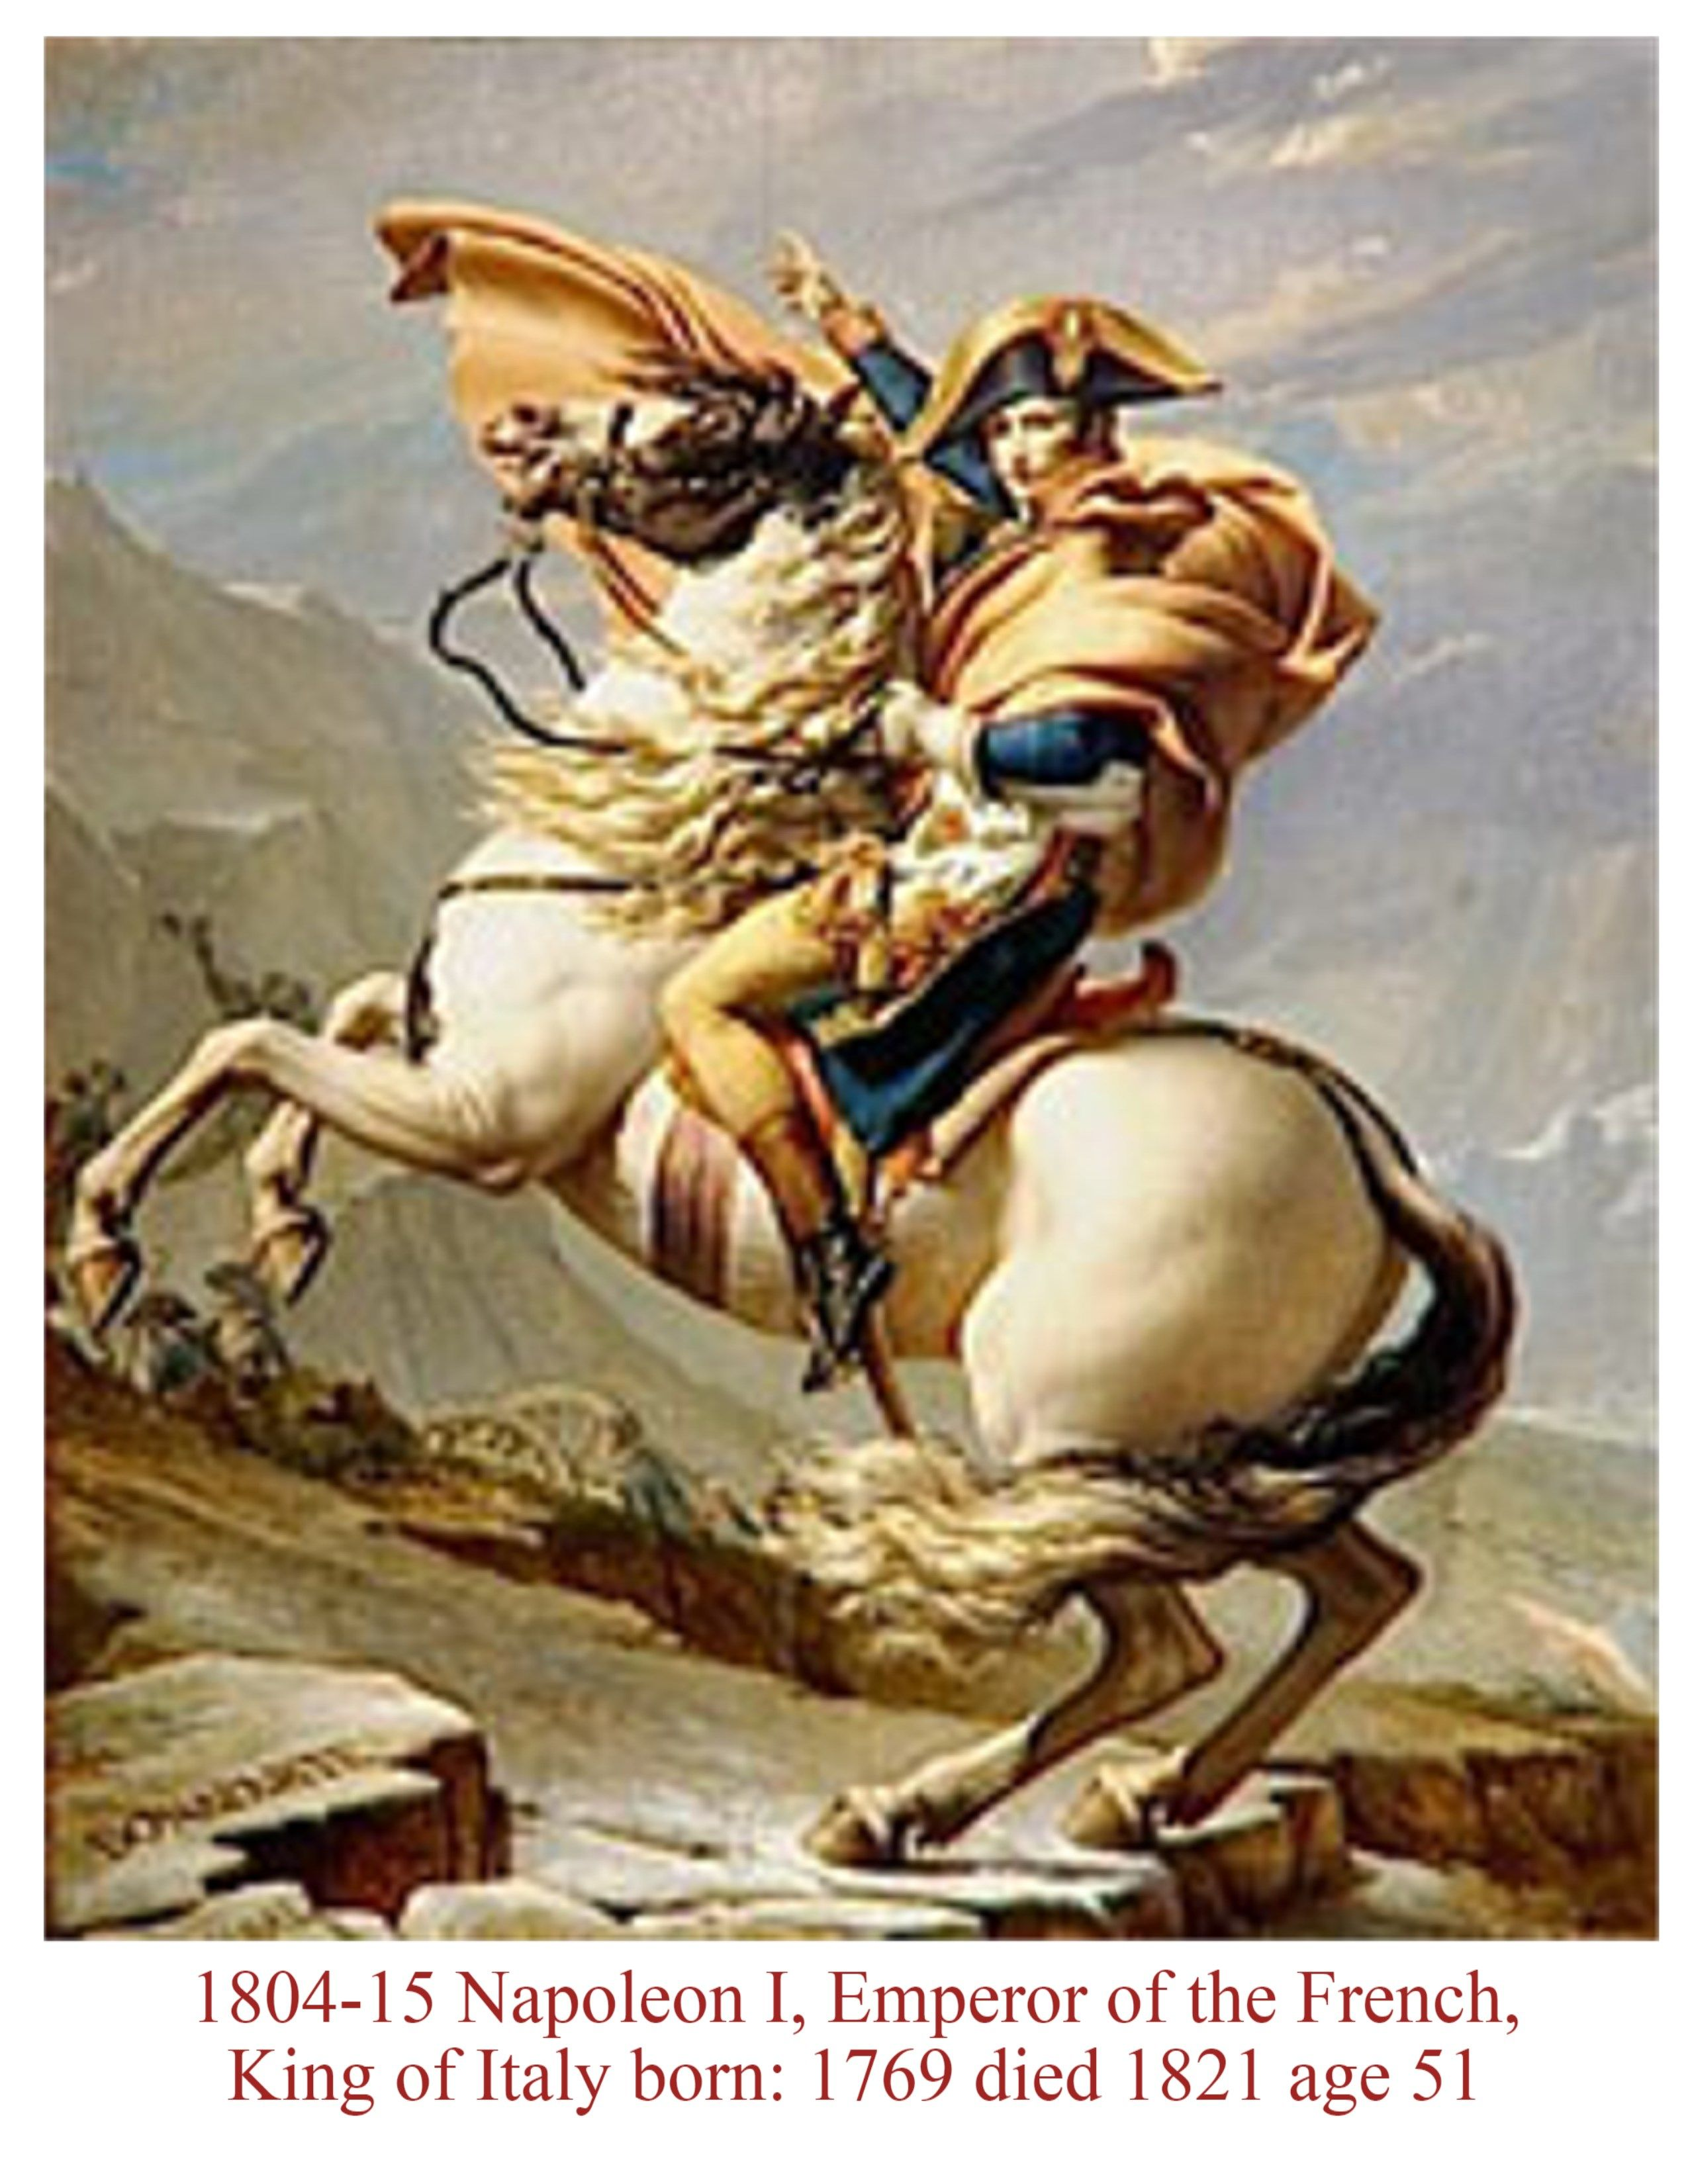 Napoleon, Emperor of the French 1804-1814 and again March 1815-June 1815 King of Italy 1805-1814 Time of the French Revolution and wars in Europe.Napoleonic Code influence civil law Worldwide. His personality was slightly Manic Depressive. At one point he felt he could do no wrong,the true leader of the World. Off and on he was barely able to handle the crisis he faced.  Yet; Note:  He was a brilliant general, and was able to inspired men to do the impossible.